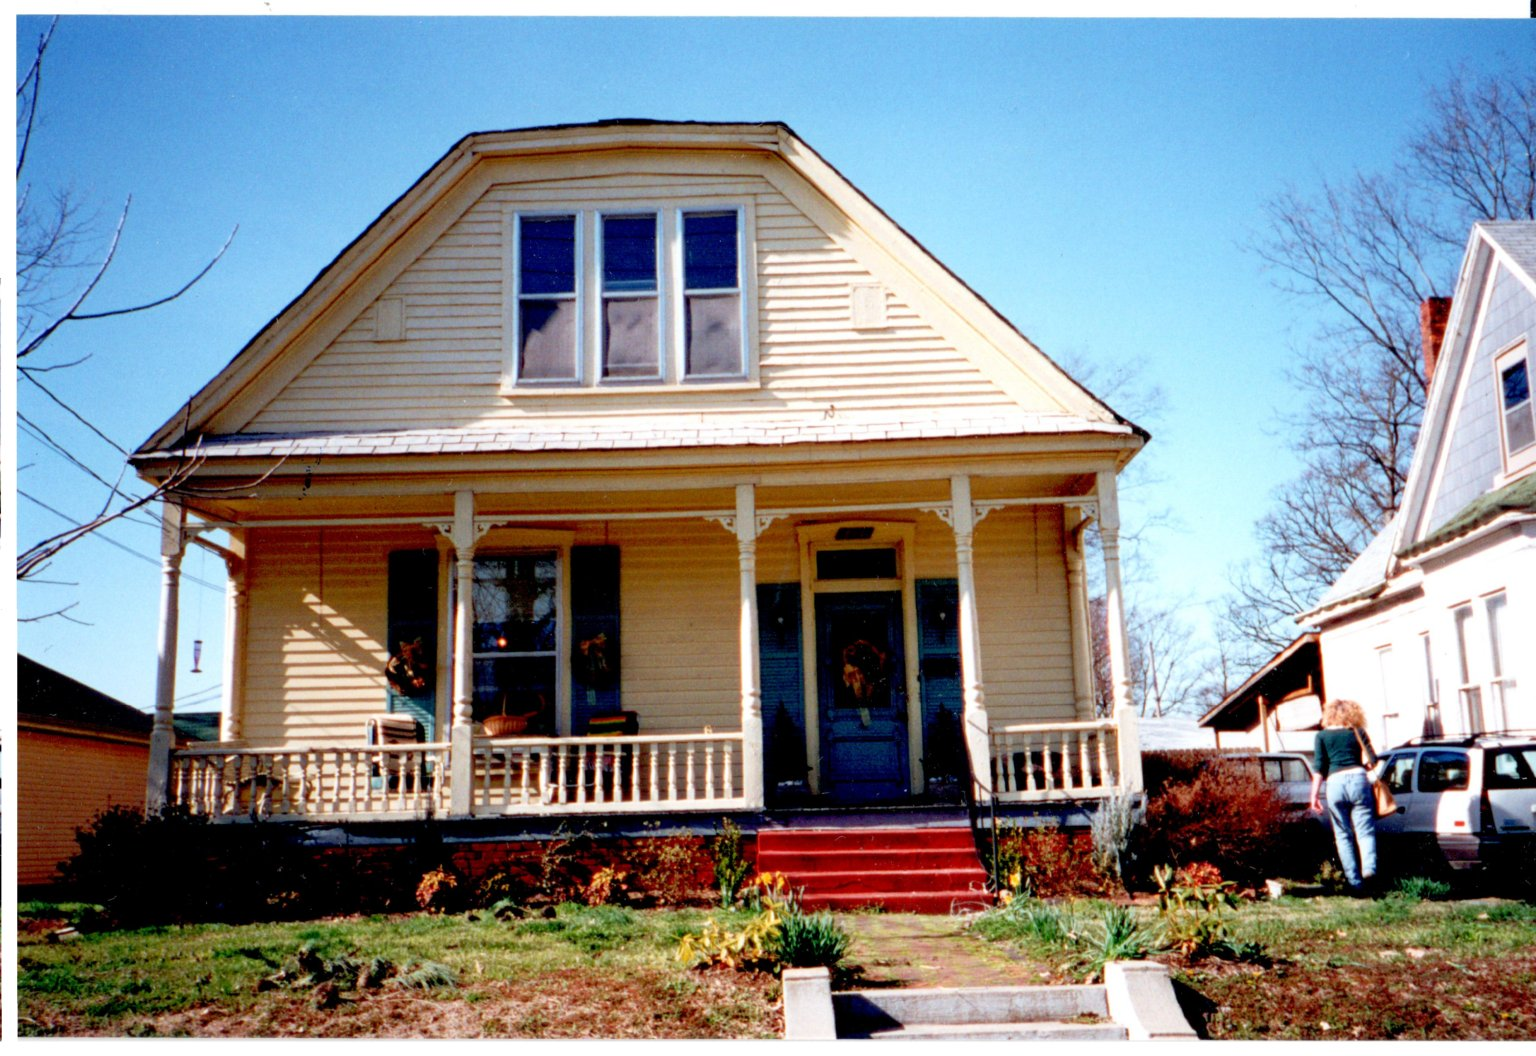 House at1721 Jefferson Street, Paducah, KY